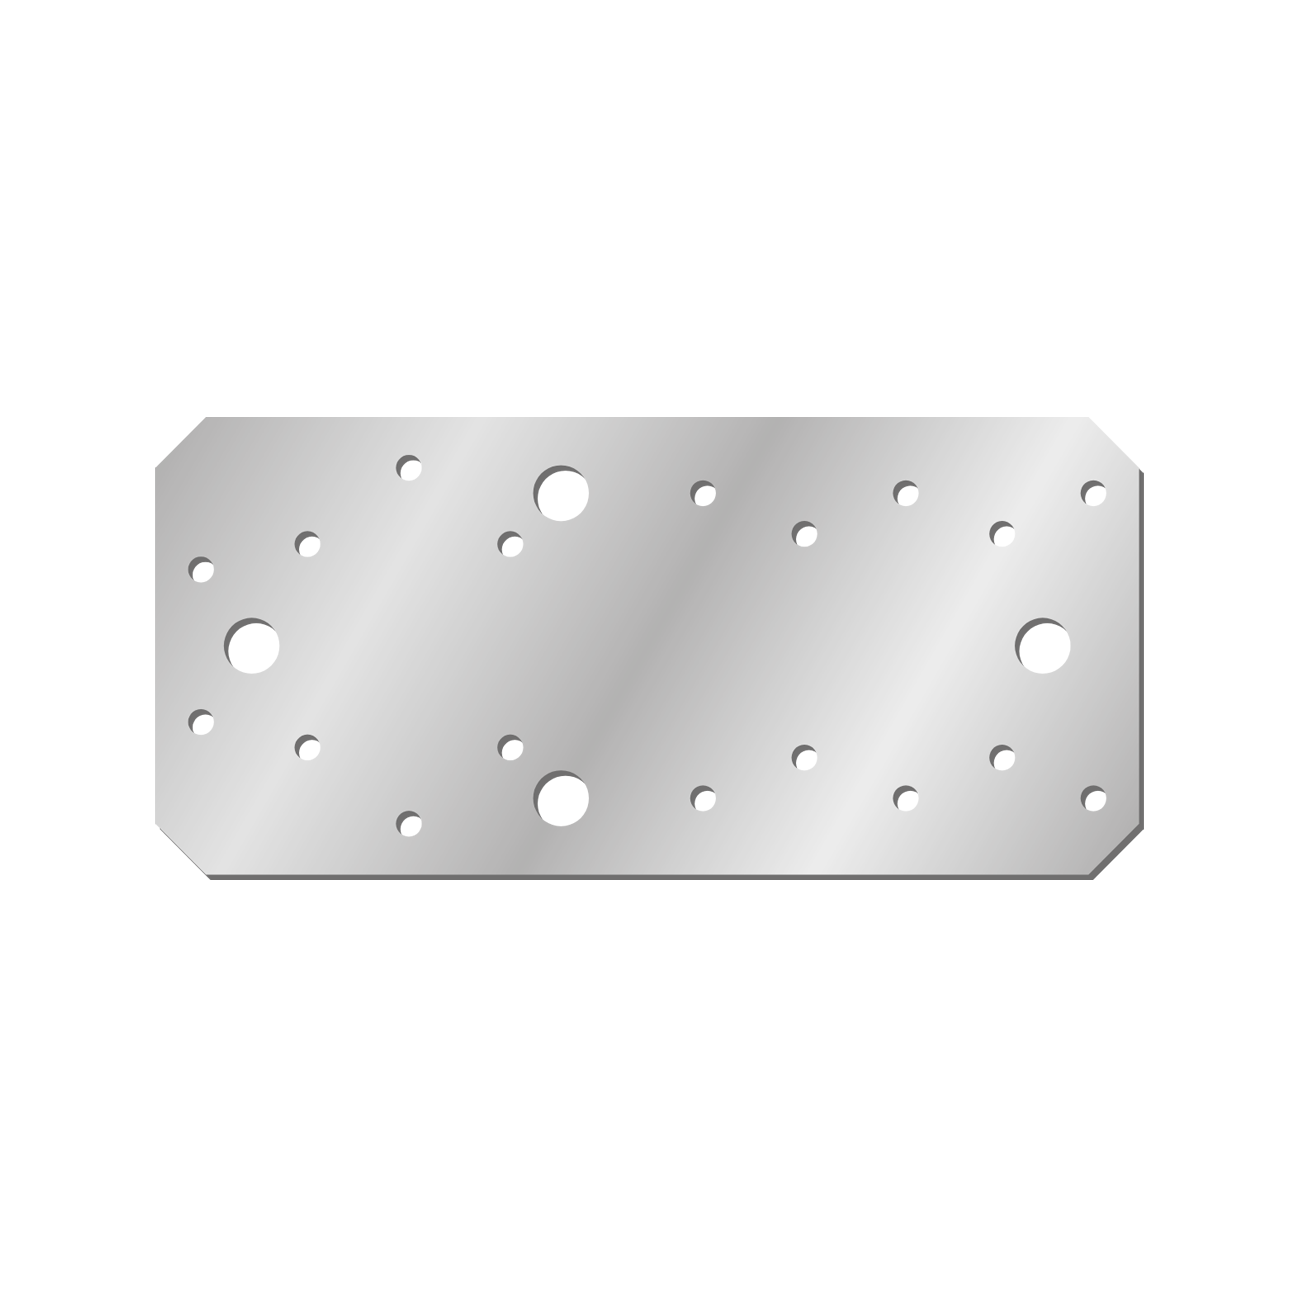 Placuta Cp100 Zincata 194x90x2 Mm Perforatii 18×5.1-4×11.0